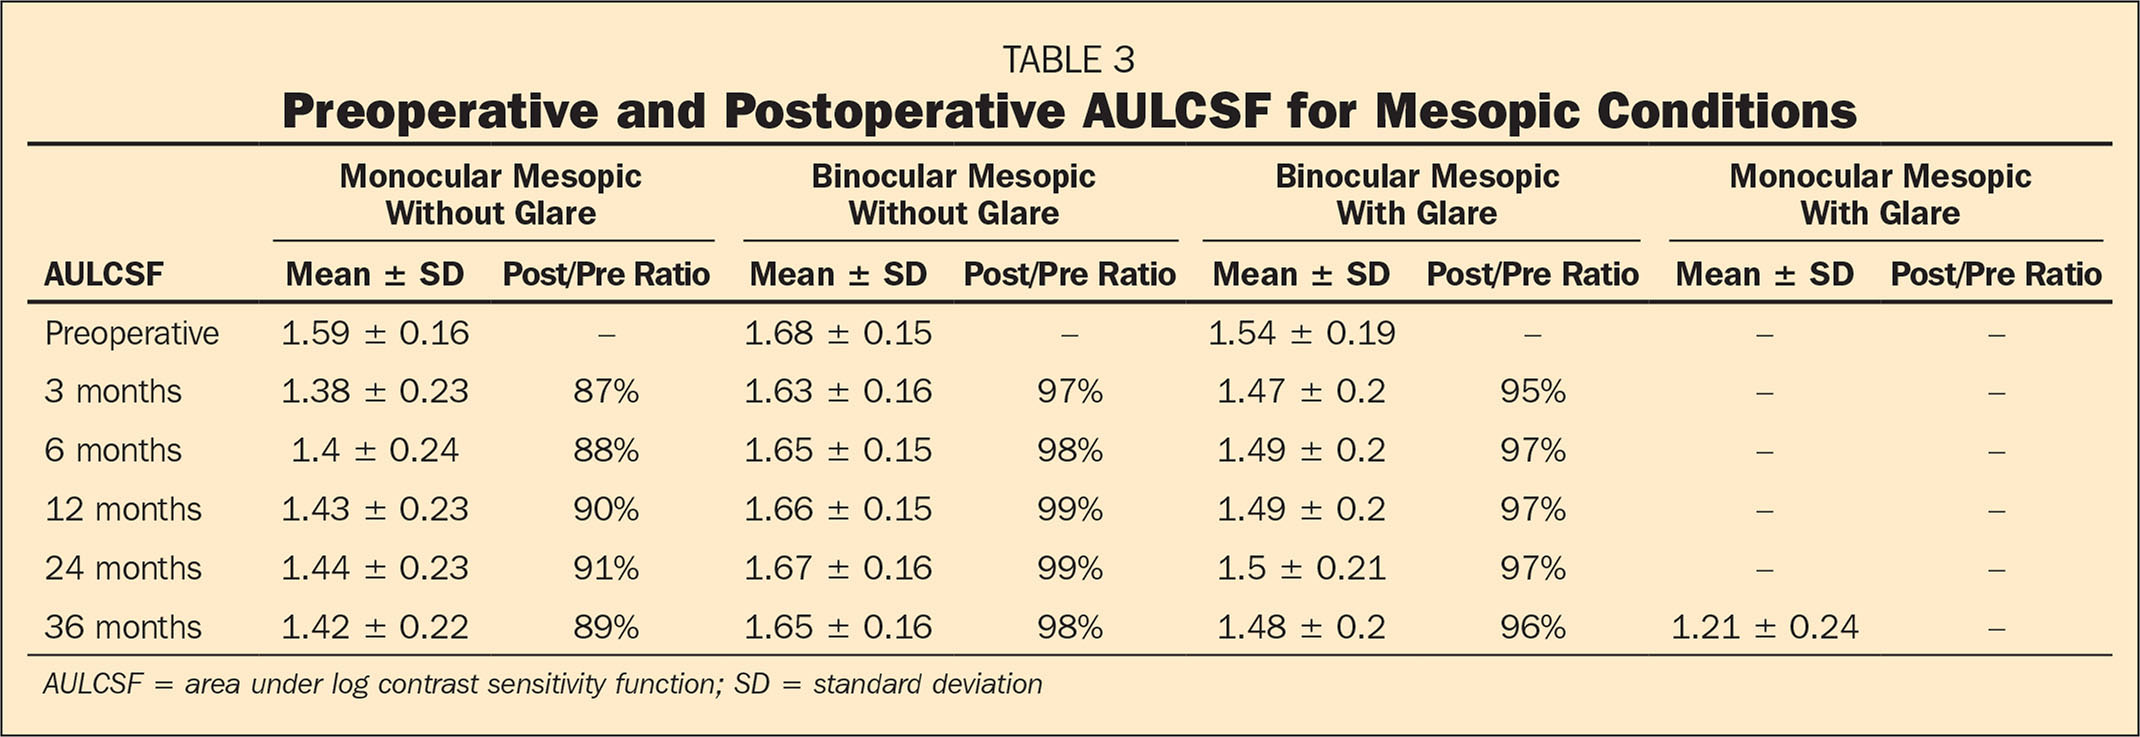 Preoperative and Postoperative AULCSF for Mesopic Conditions